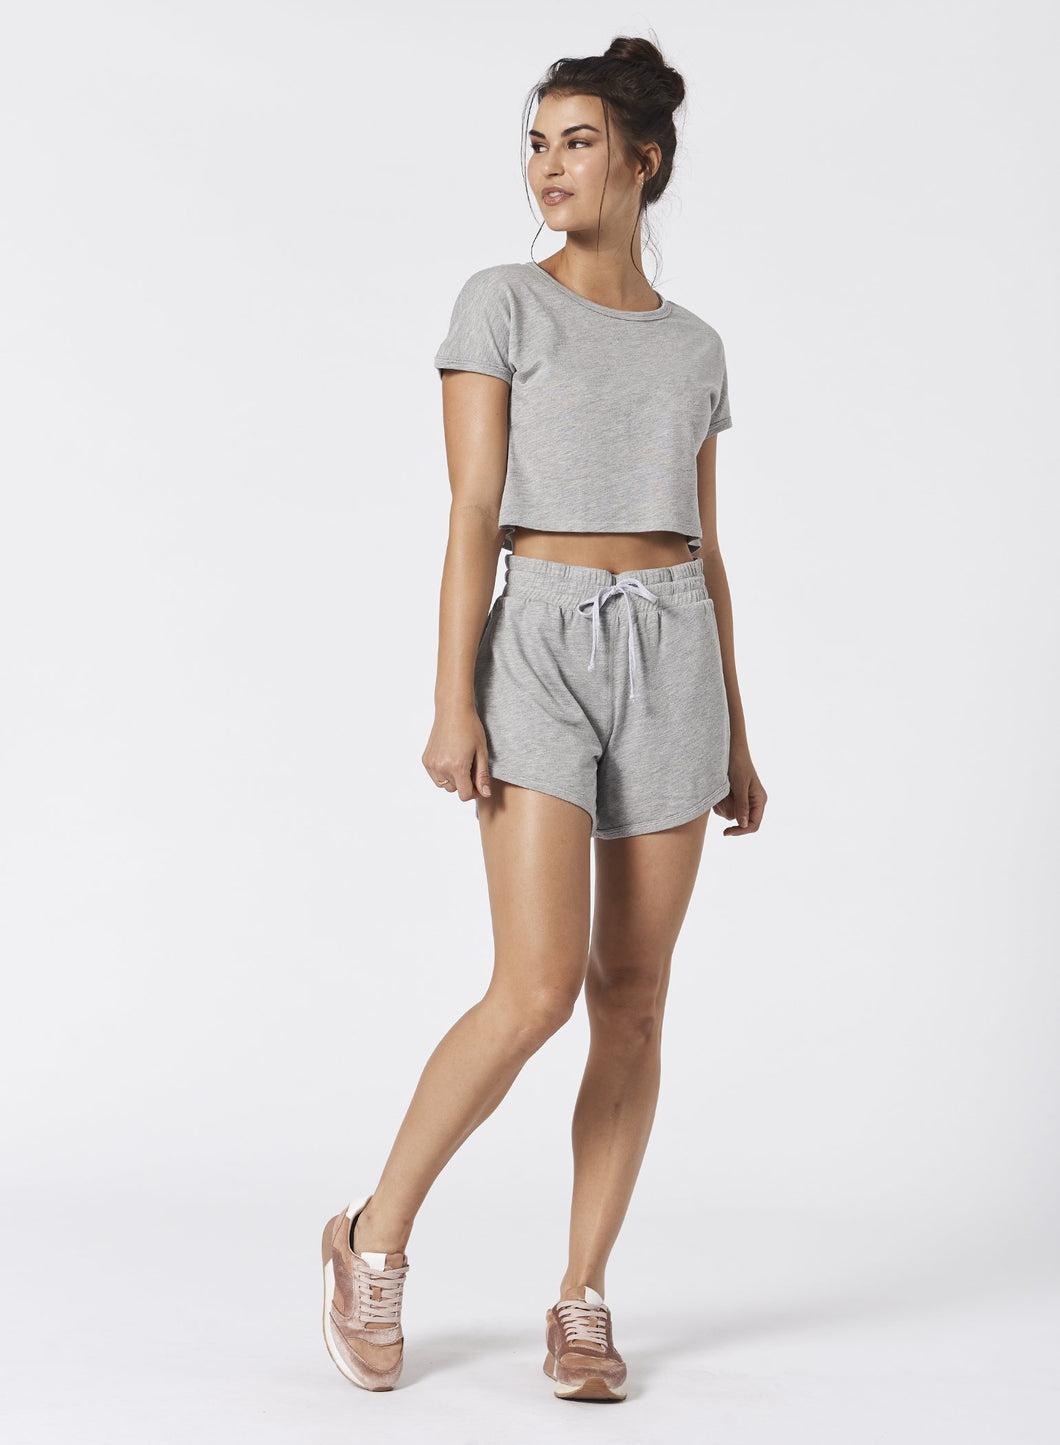 Some Like It Hot Cropped Tee by NUX Active